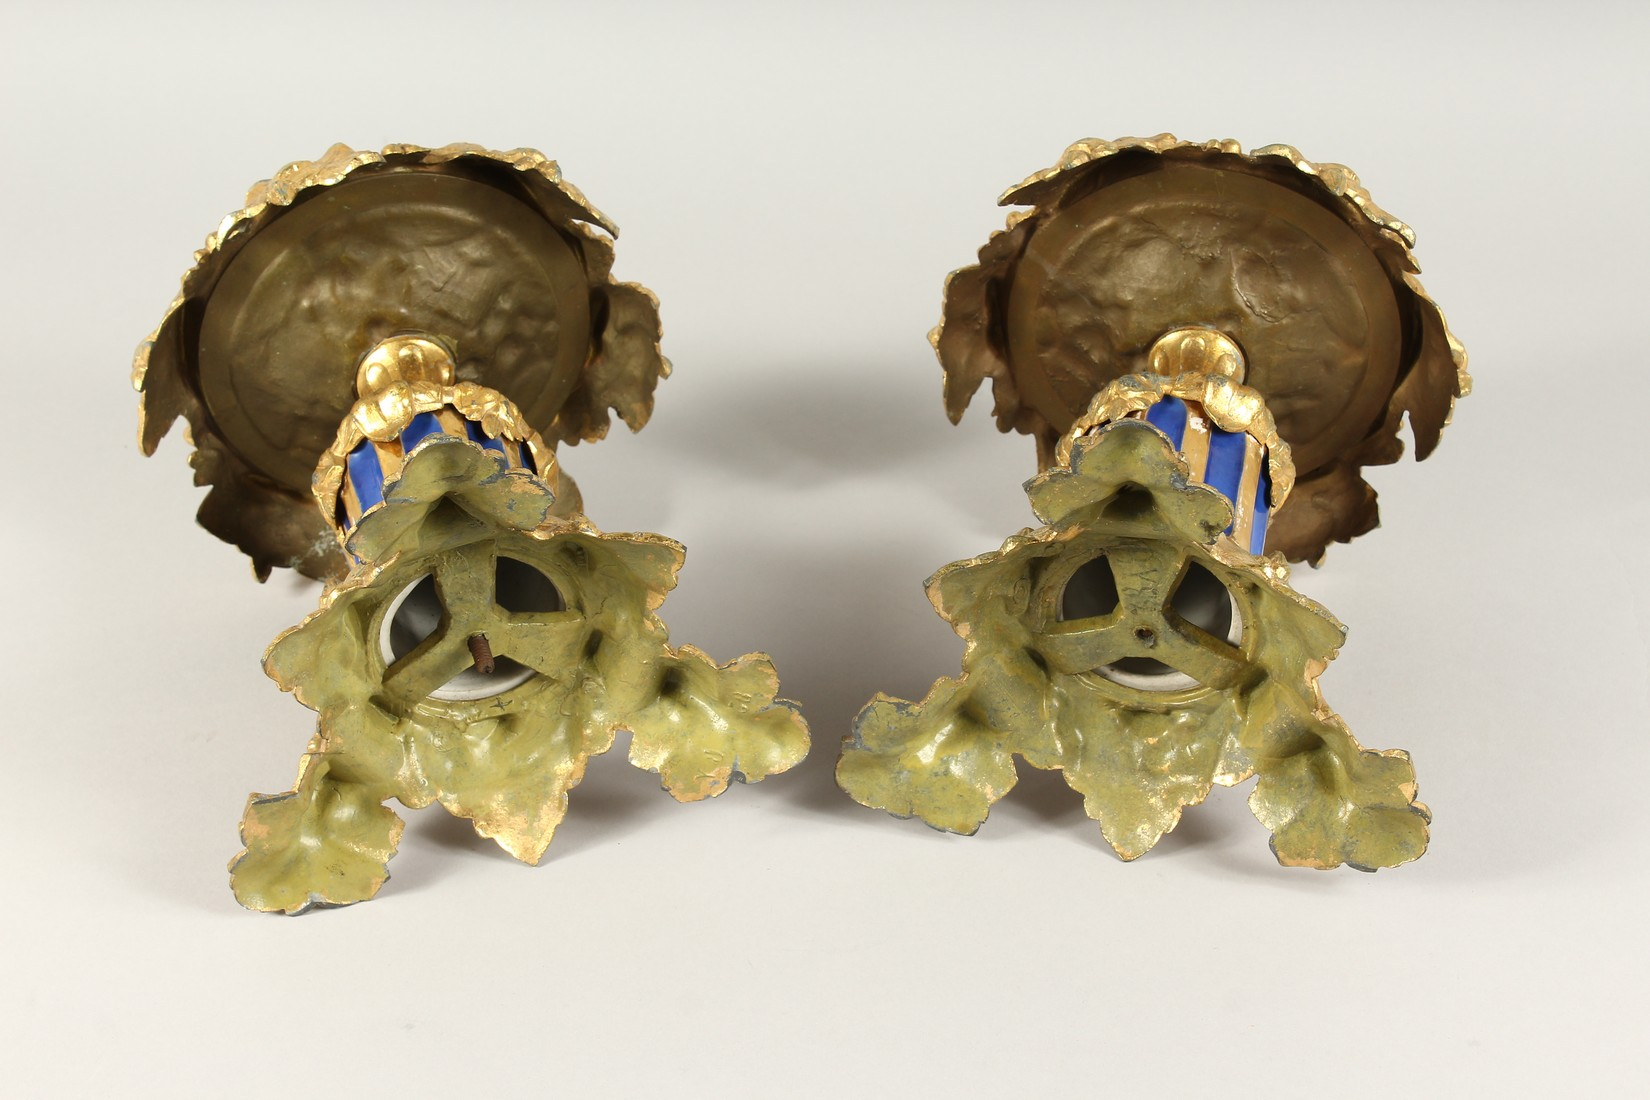 A SUPERB PAIR OF 19TH CENTURY FRENCH PORCELAIN AND GILT BRONZE LAMPS ON STANDS, painted with - Image 24 of 24